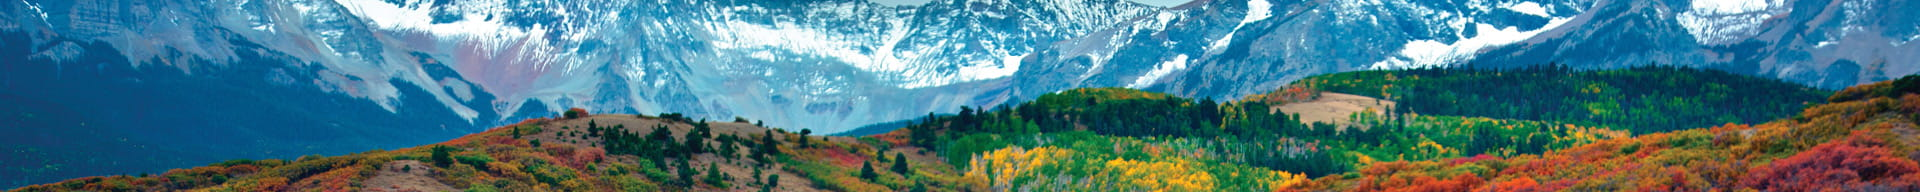 colorado-mountains-in-autumn